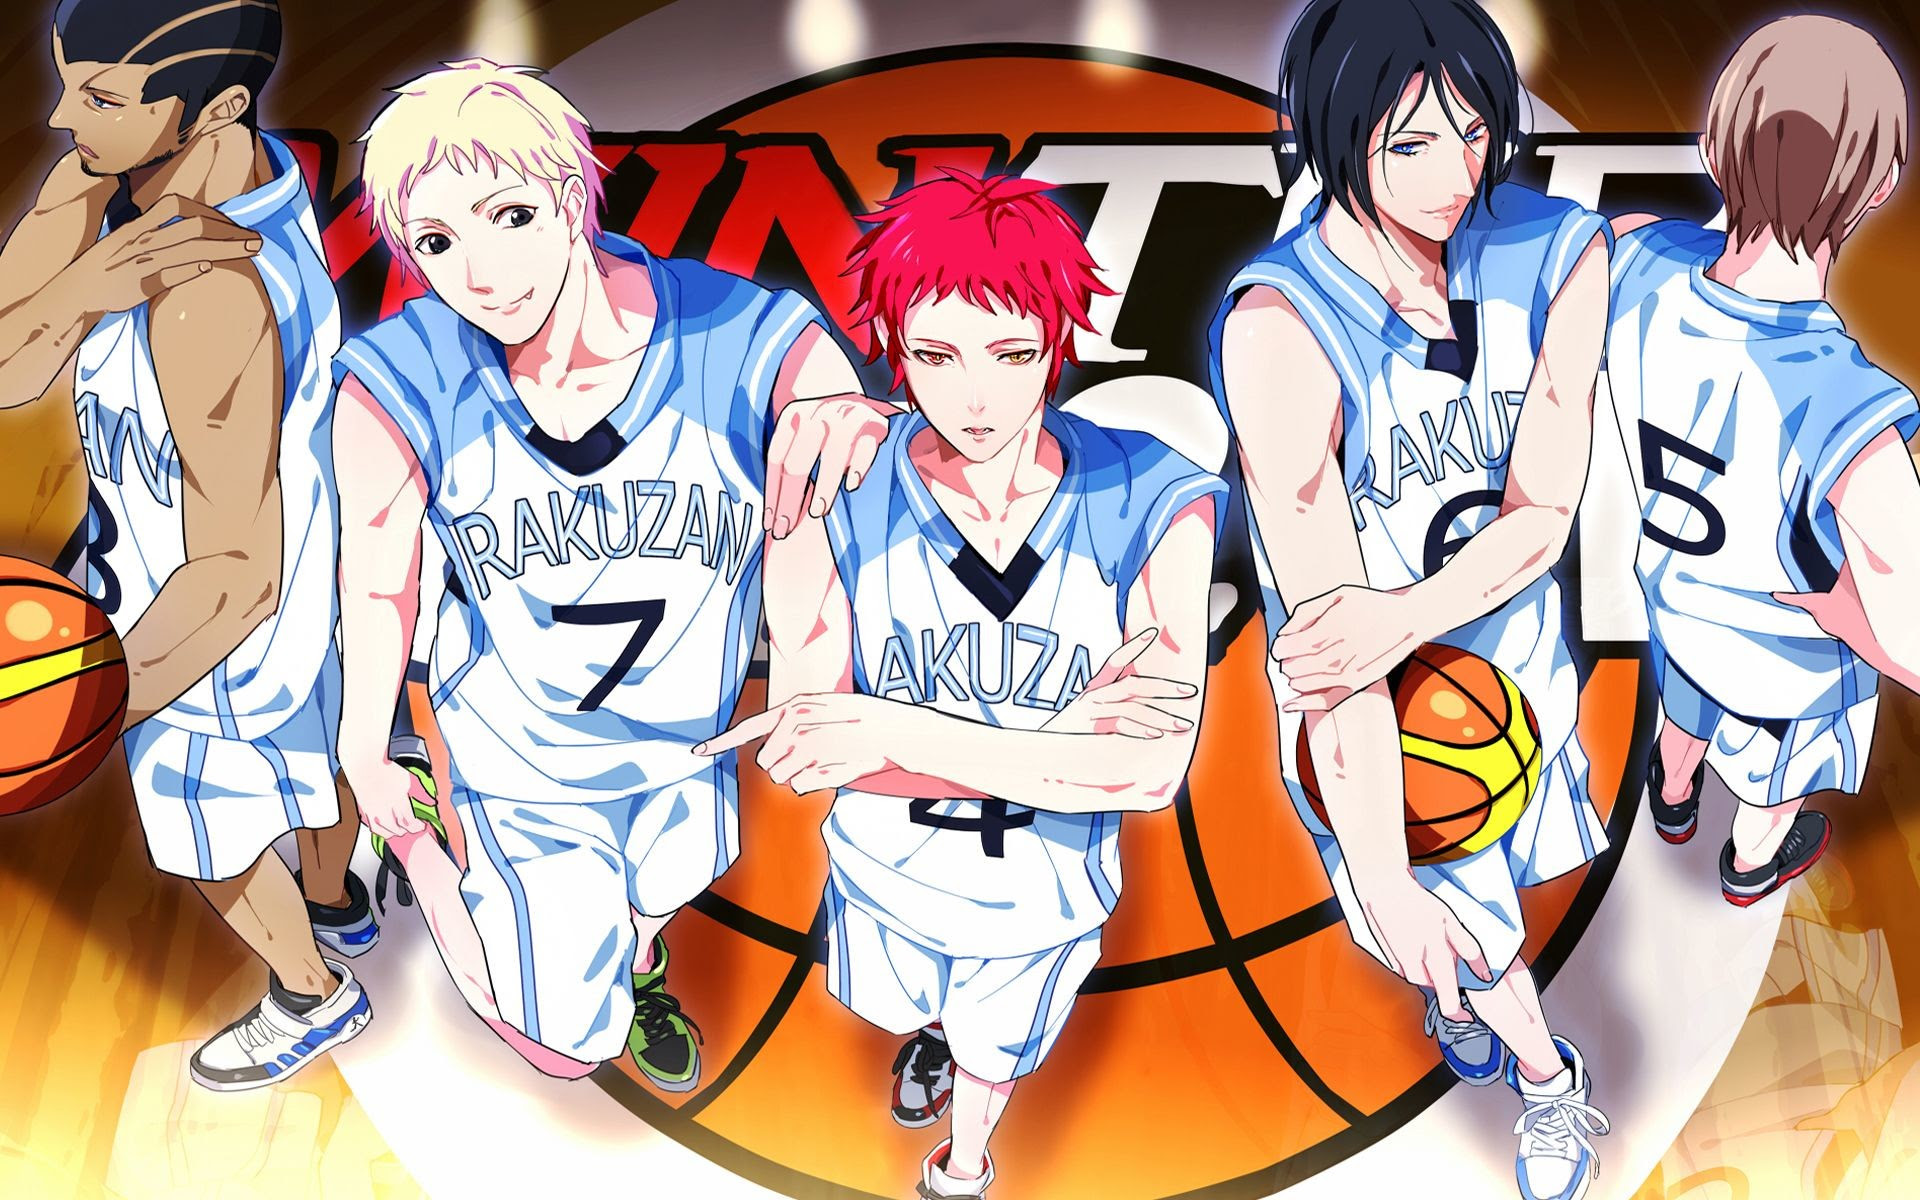 Unduh 640 Wallpaper Hd Anime Kuroko No Basket Gratis Terbaru